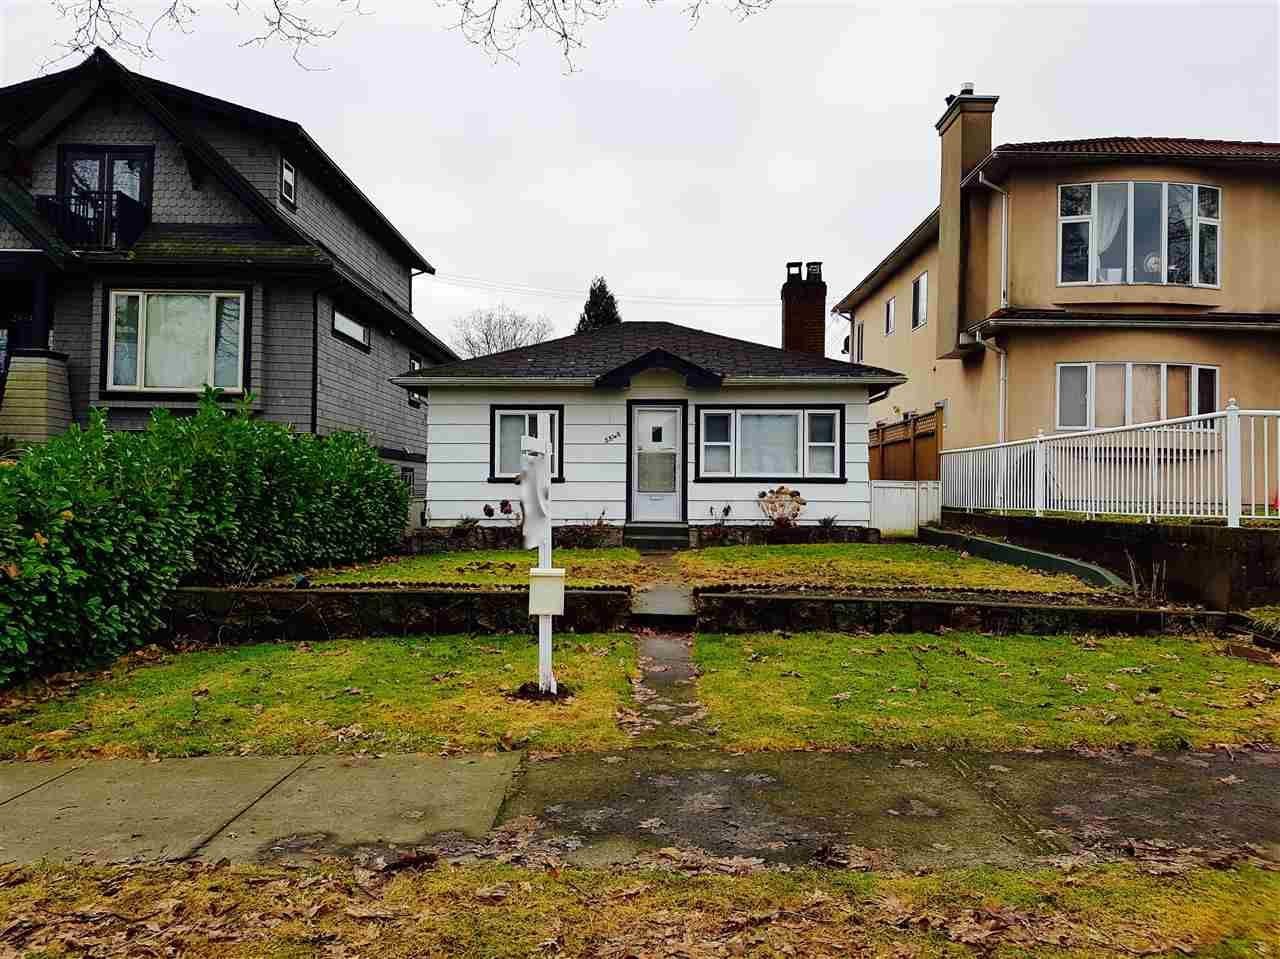 Main Photo: 2840 ETON Street in Vancouver: Hastings East House for sale (Vancouver East)  : MLS®# R2130623